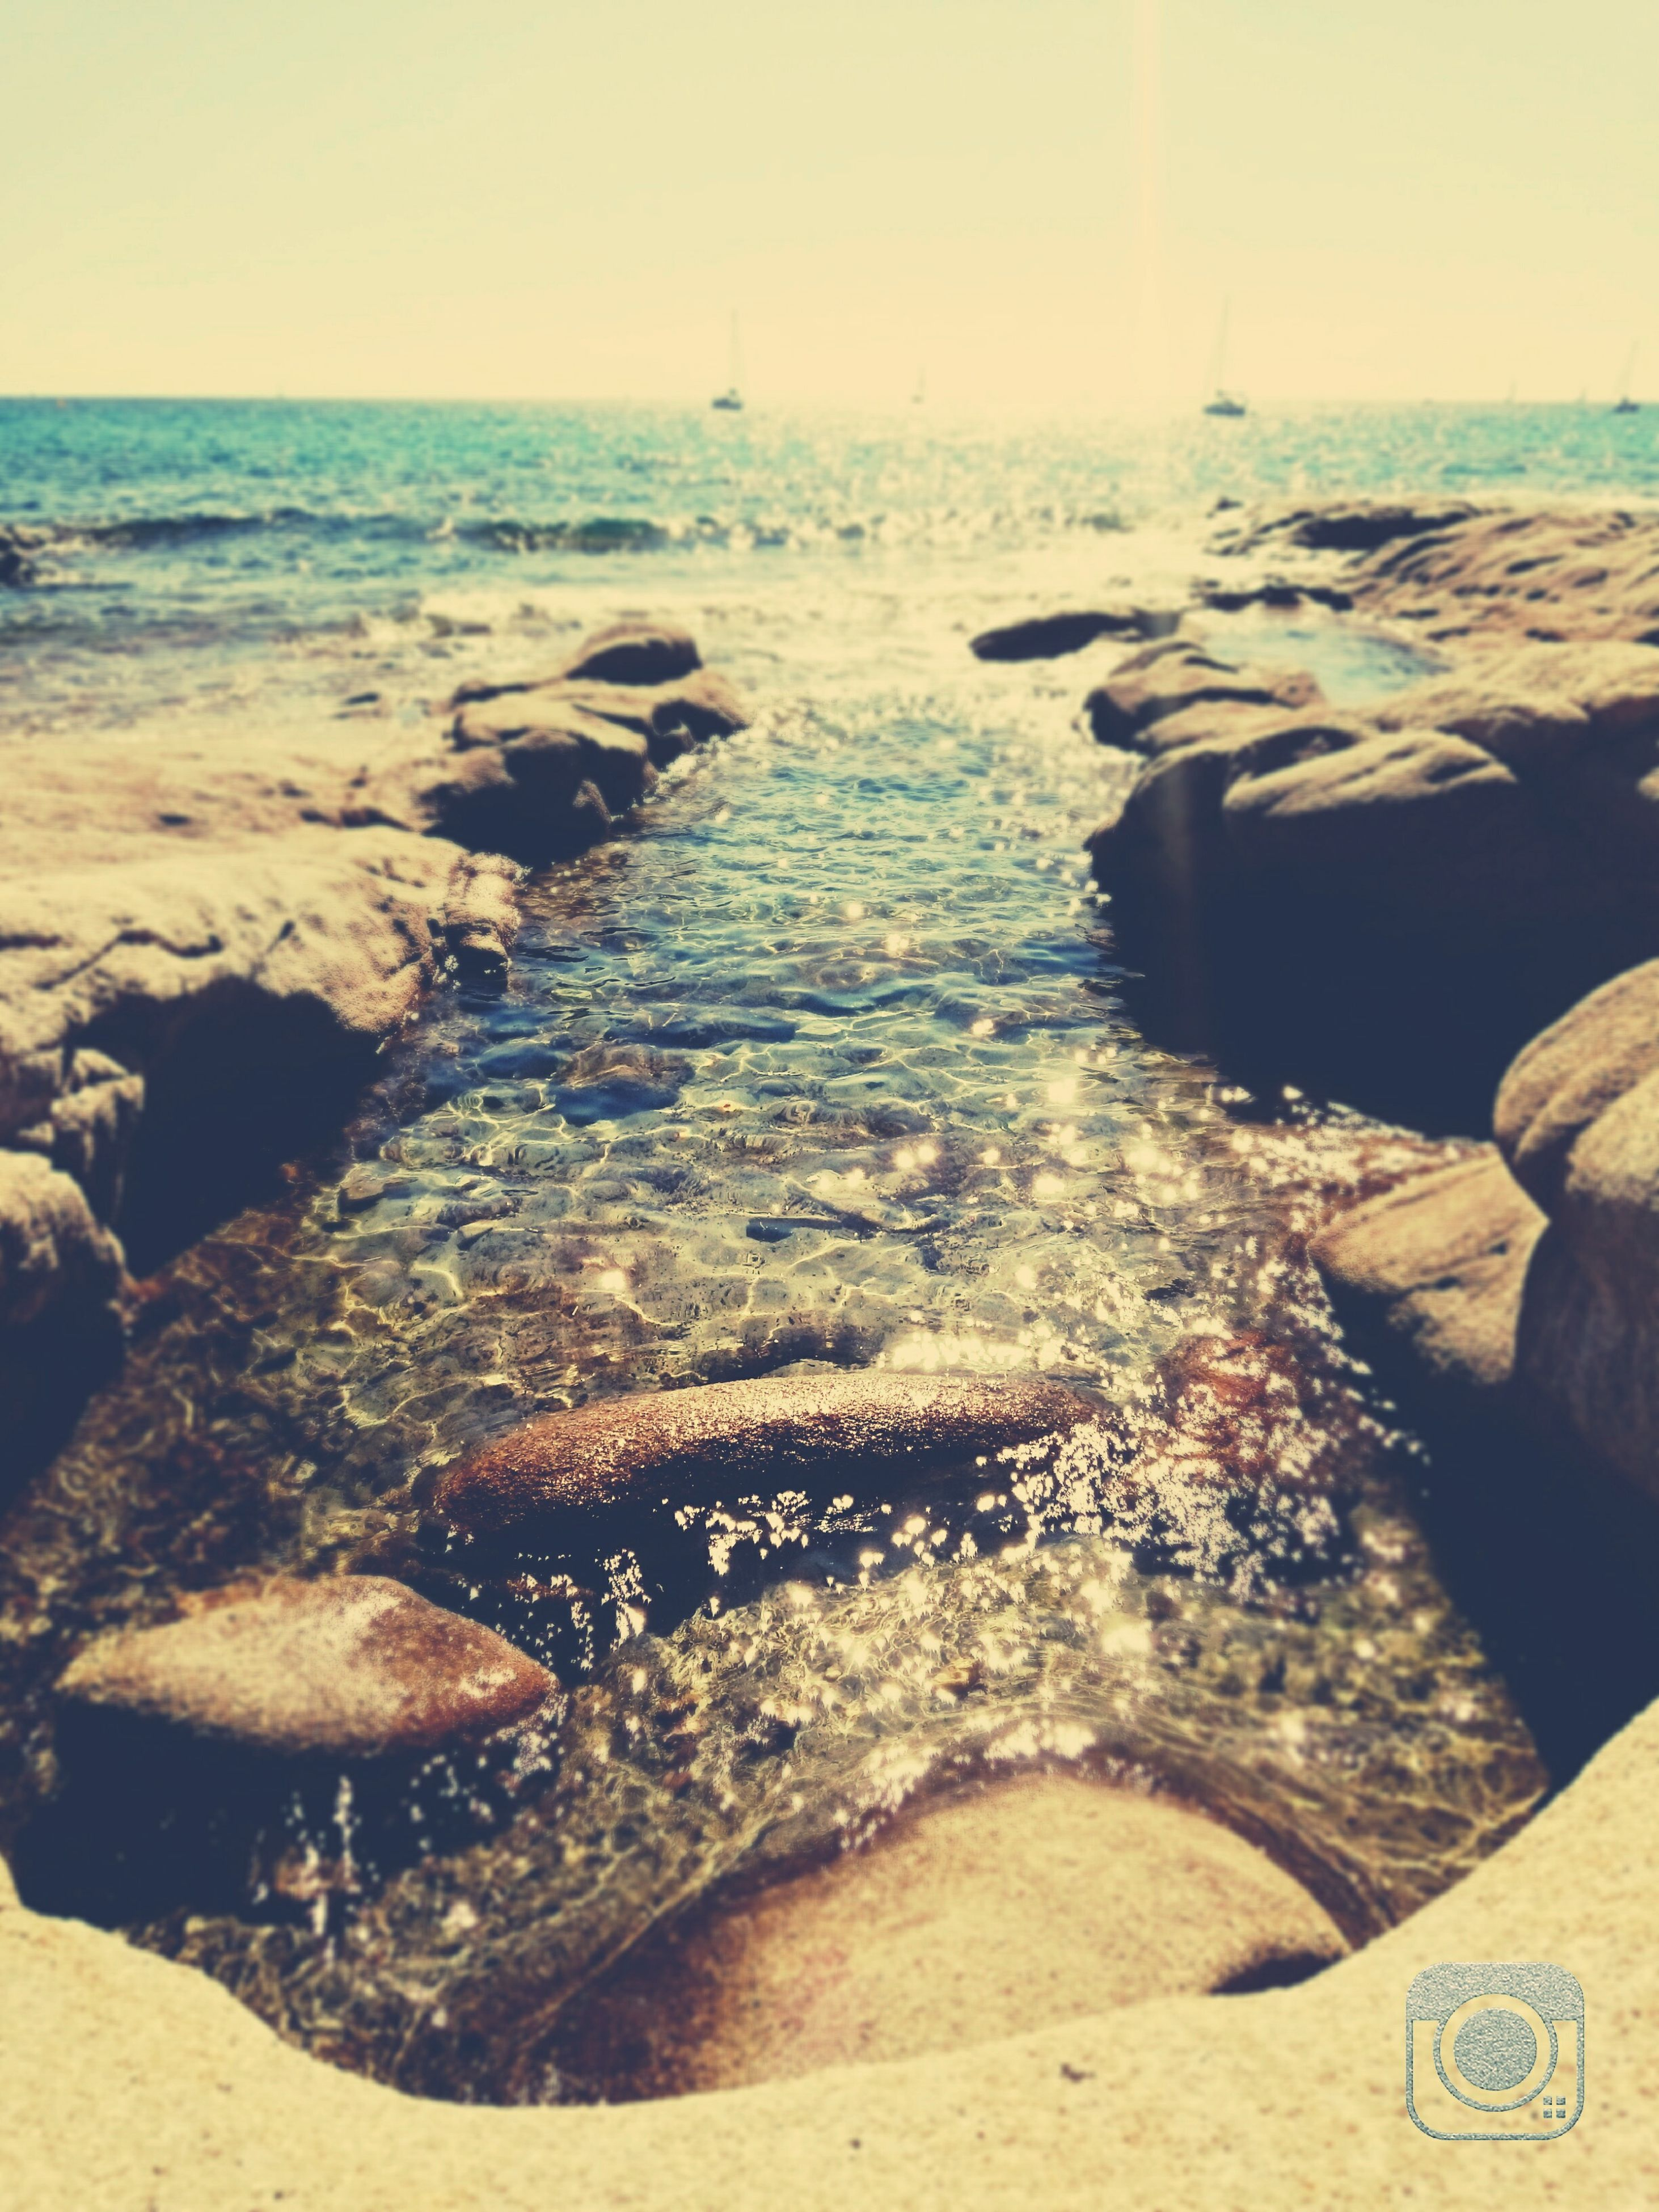 beach, sea, sand, water, shore, tranquil scene, tranquility, rock - object, scenics, nature, clear sky, sunlight, beauty in nature, horizon over water, high angle view, coastline, outdoors, day, idyllic, rock formation